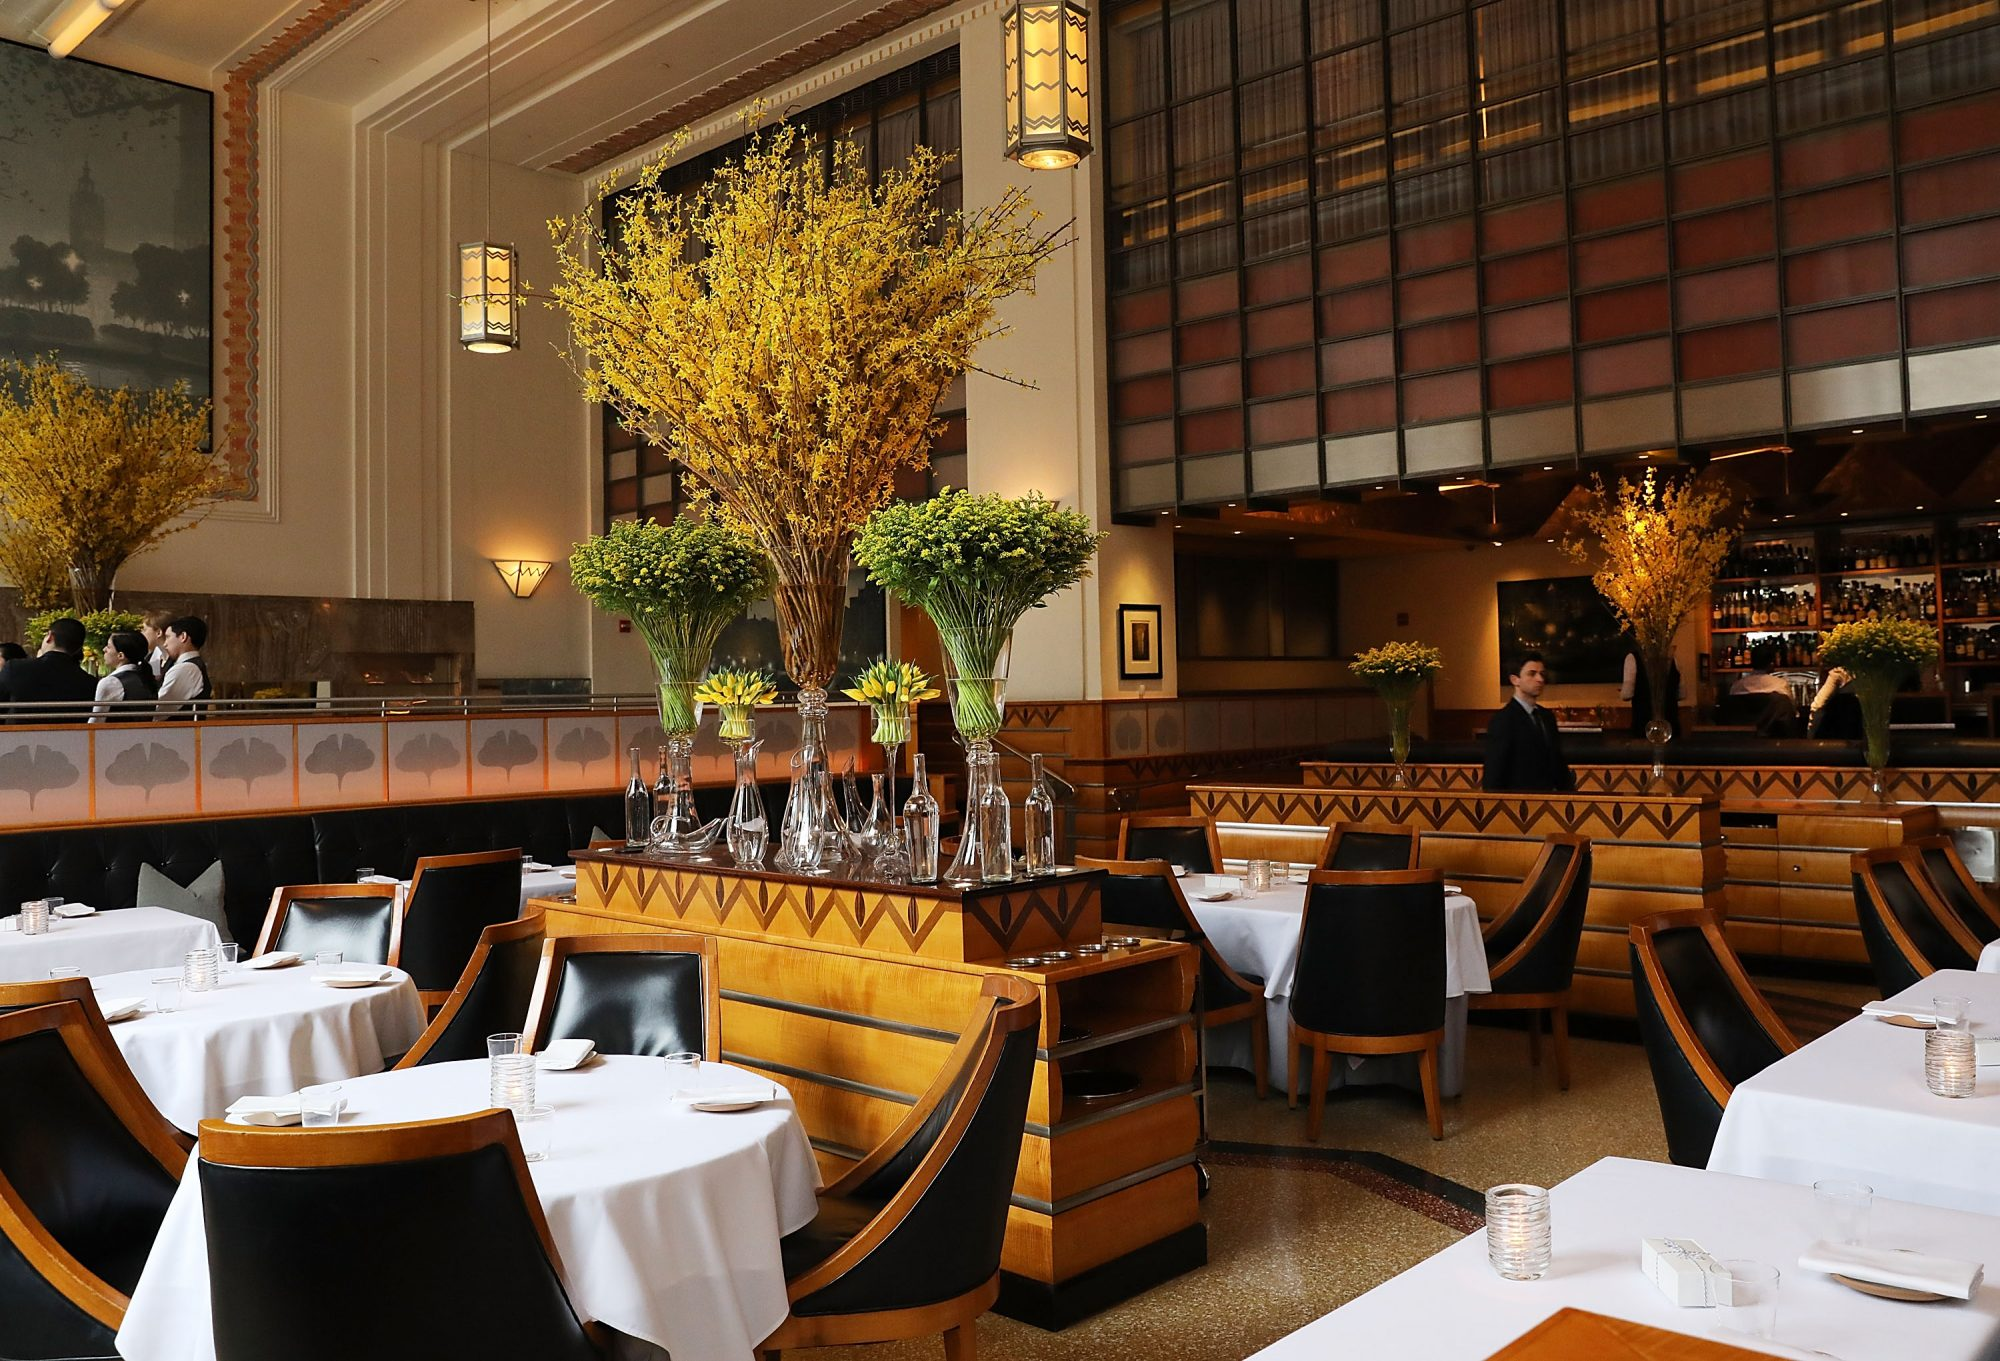 New York City's 11 Madison Park Named World's Best Restaurant